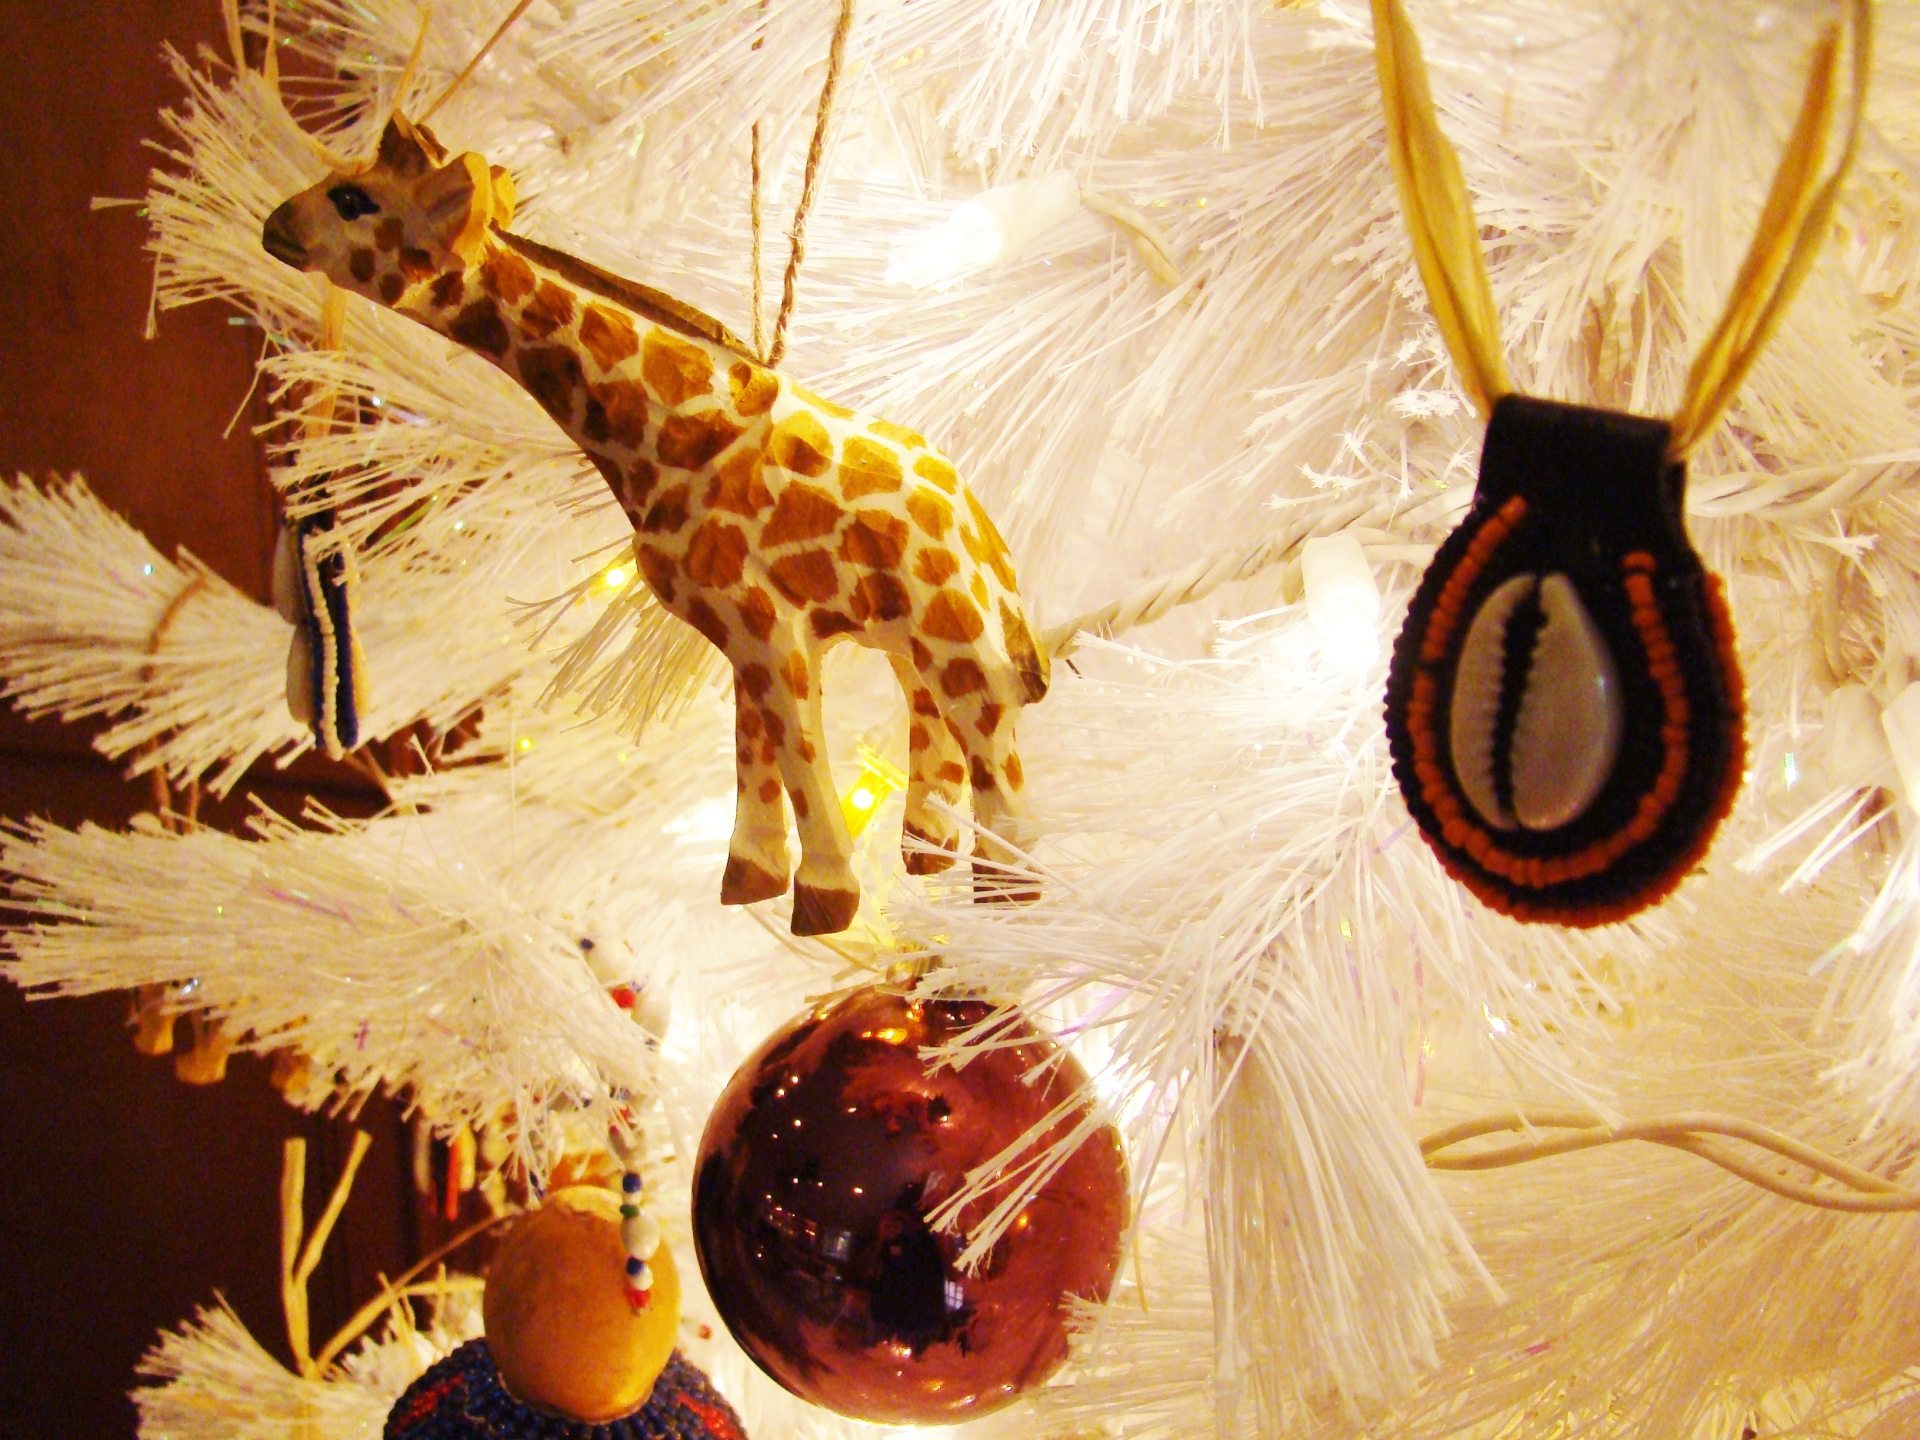 Fiorito Interior Design, interior design, Homes For The Holidays, African, holiday tree, carved wooden giraffe ornament, cowrie shell ornament